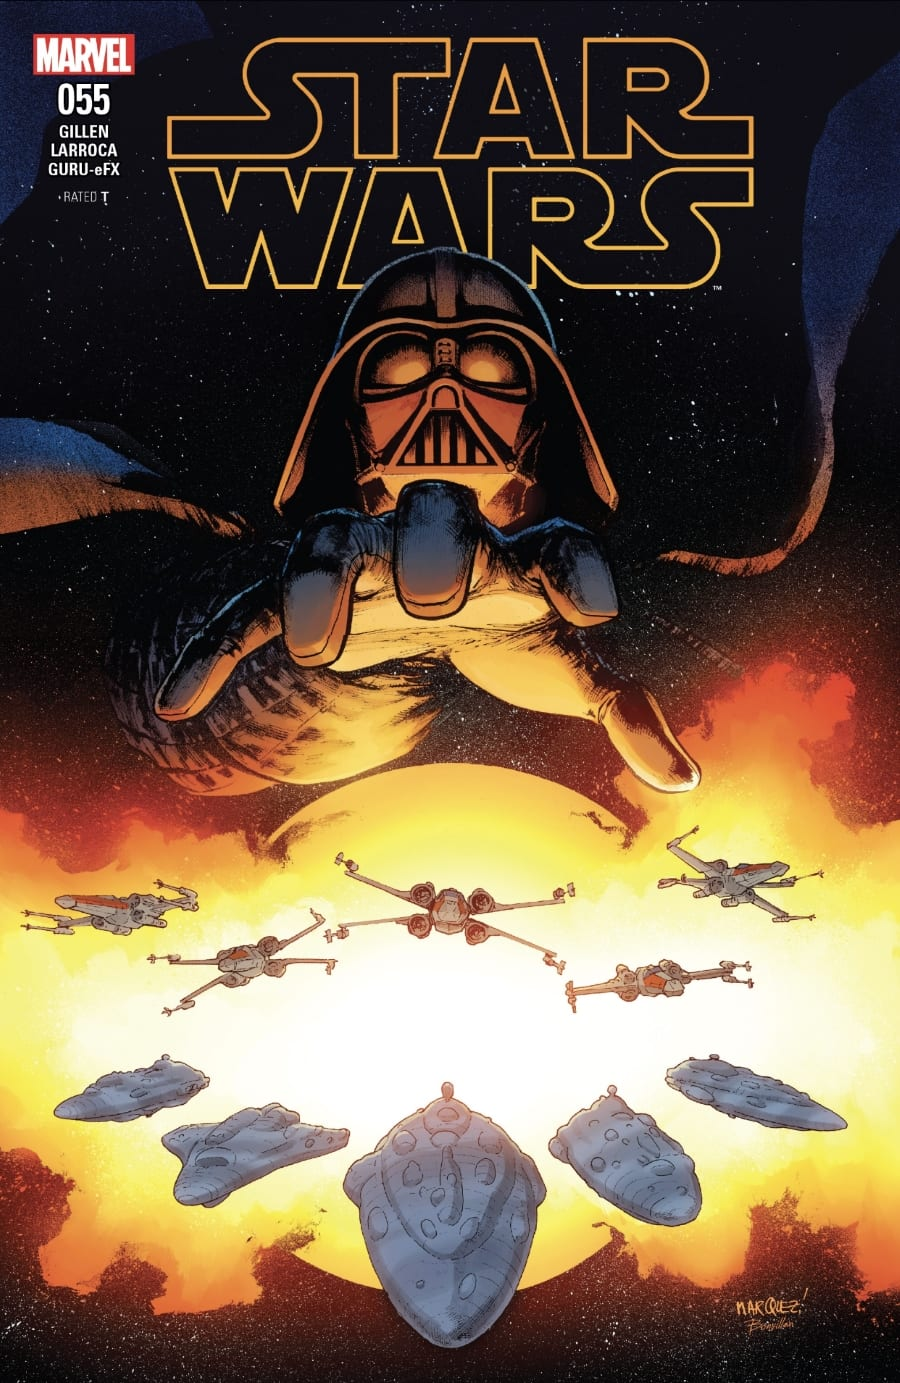 Star Wars #55 Cover